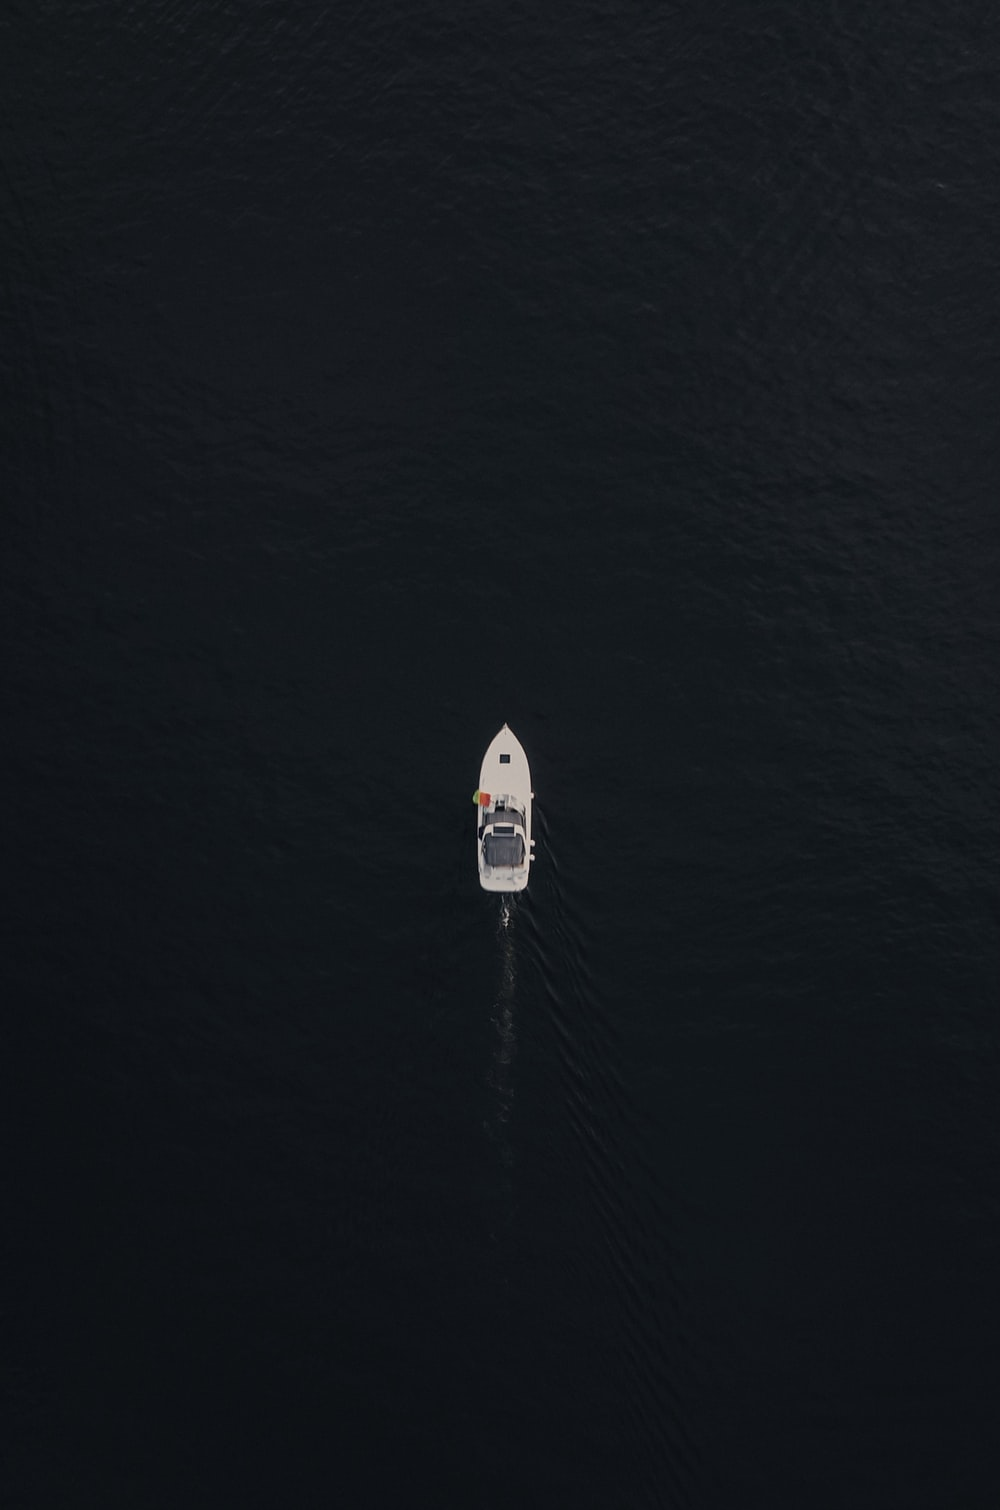 white and blue boat on sea during daytime